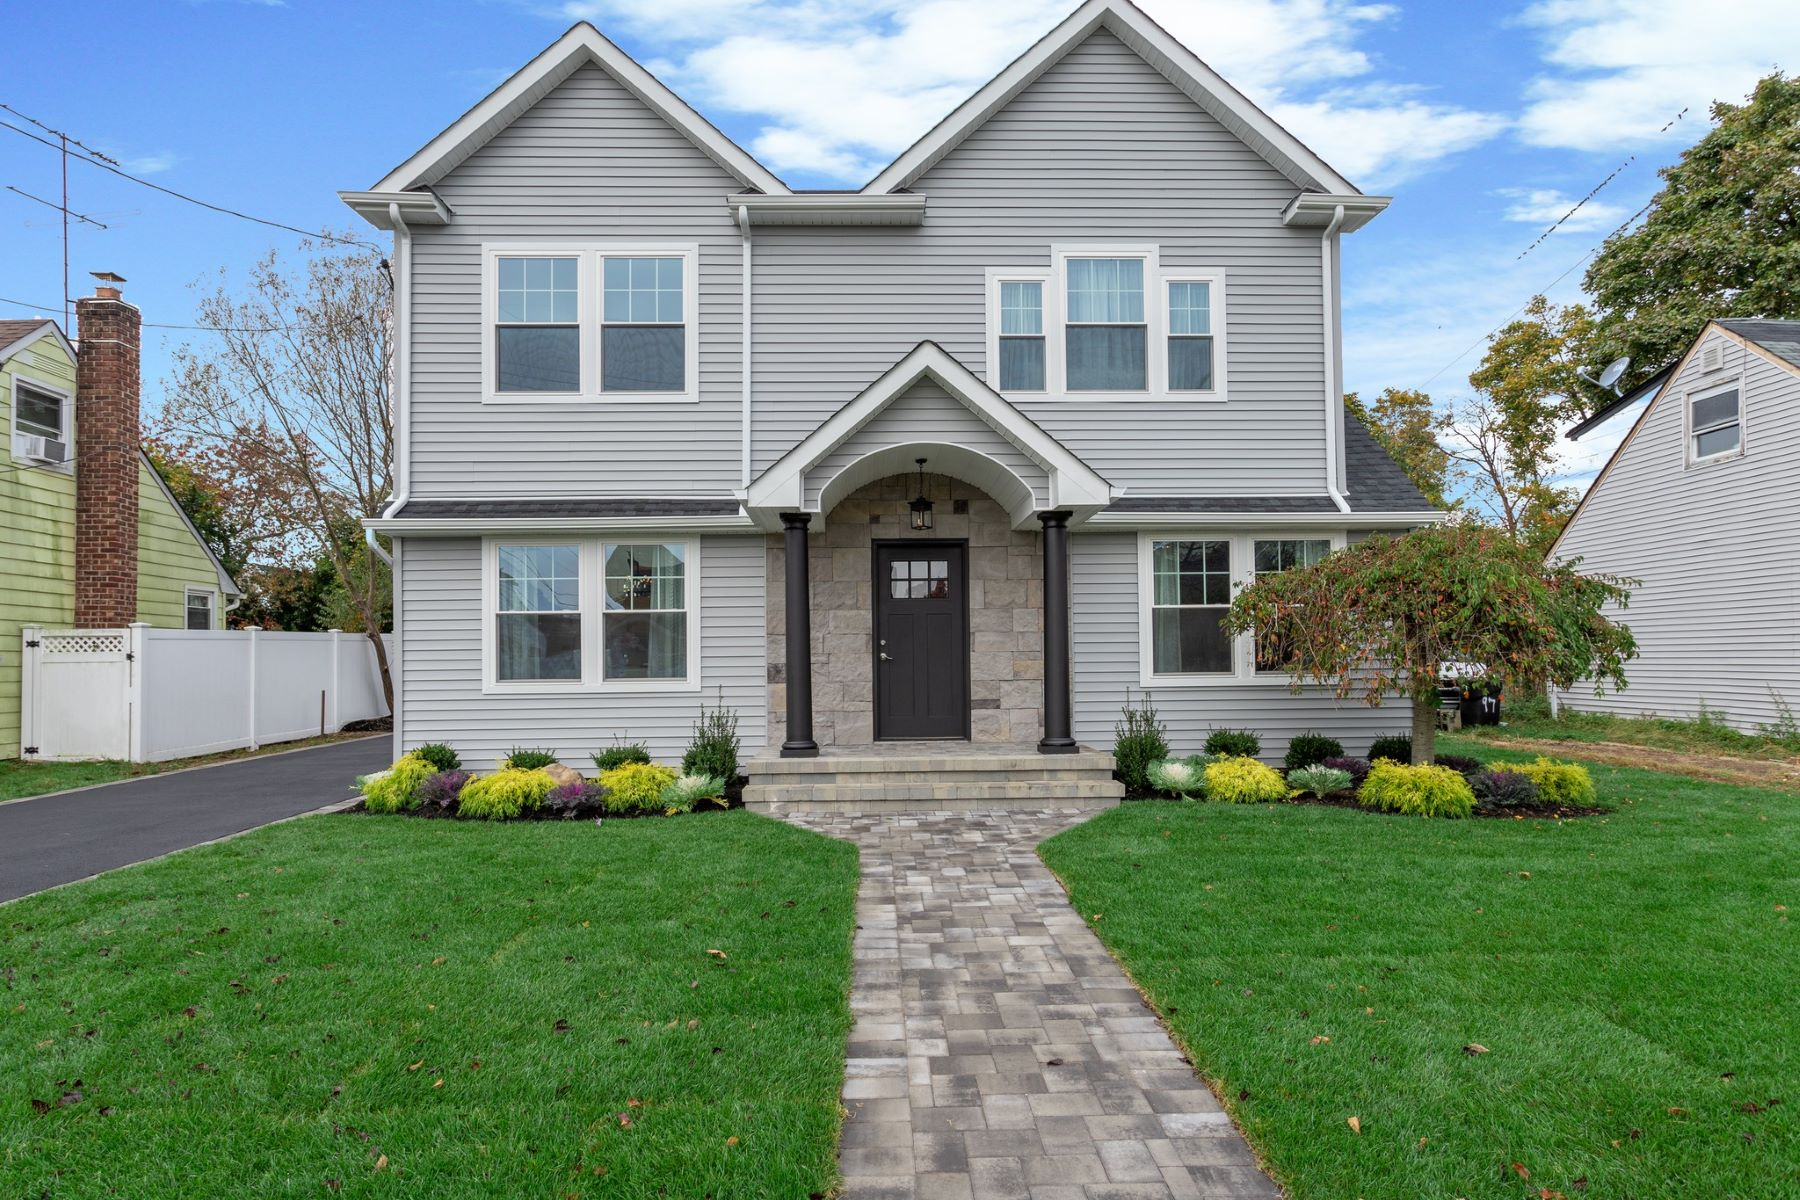 Single Family Homes for Active at Bethpage 95 S Windhorst Avenue Bethpage, New York 11714 United States